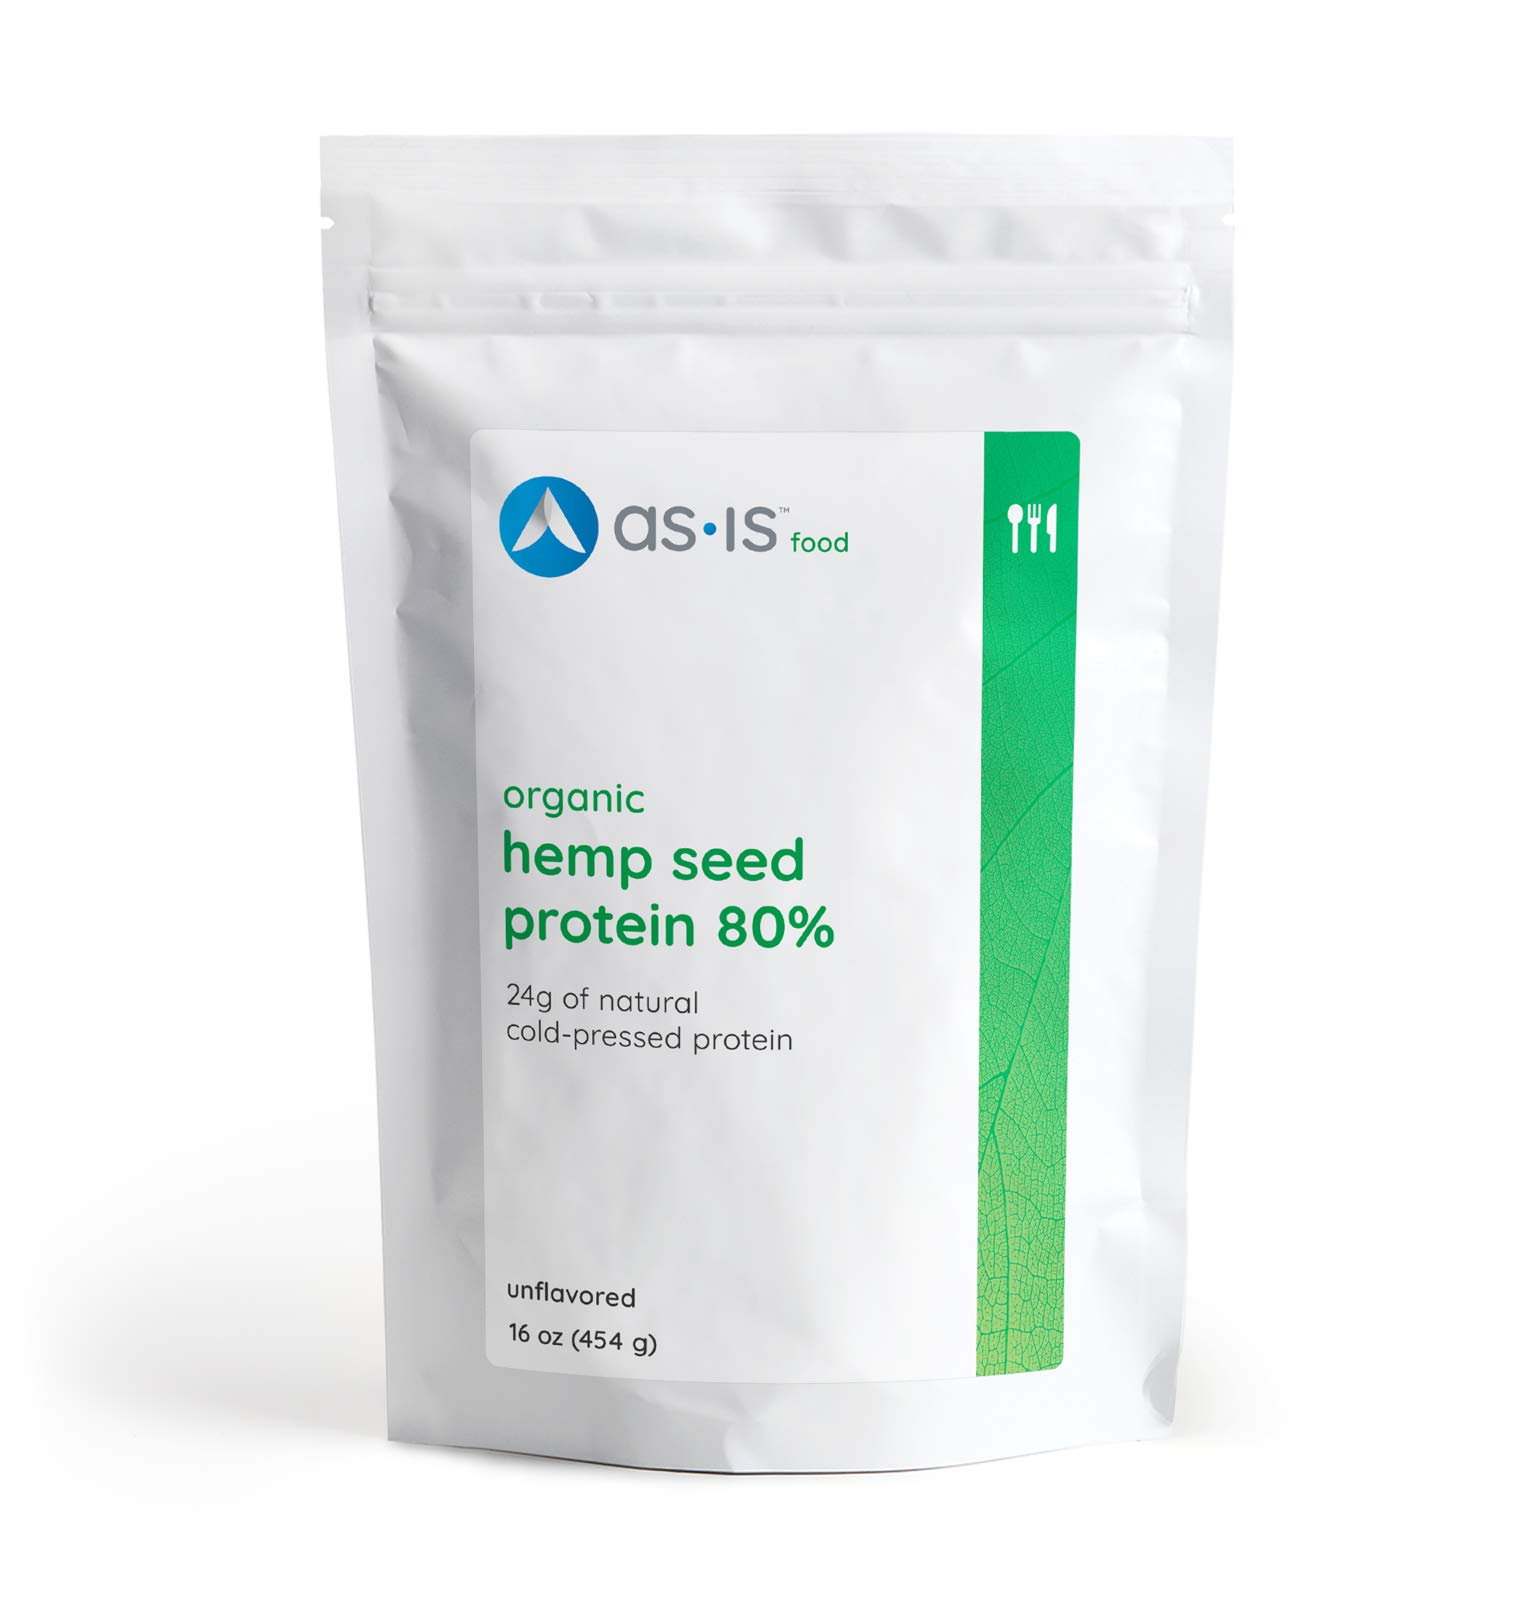 as-is Organic Hemp Seed Protein Powder 80%, Plant-Based, Vegan, Non-GMO, Unflavored, 16oz